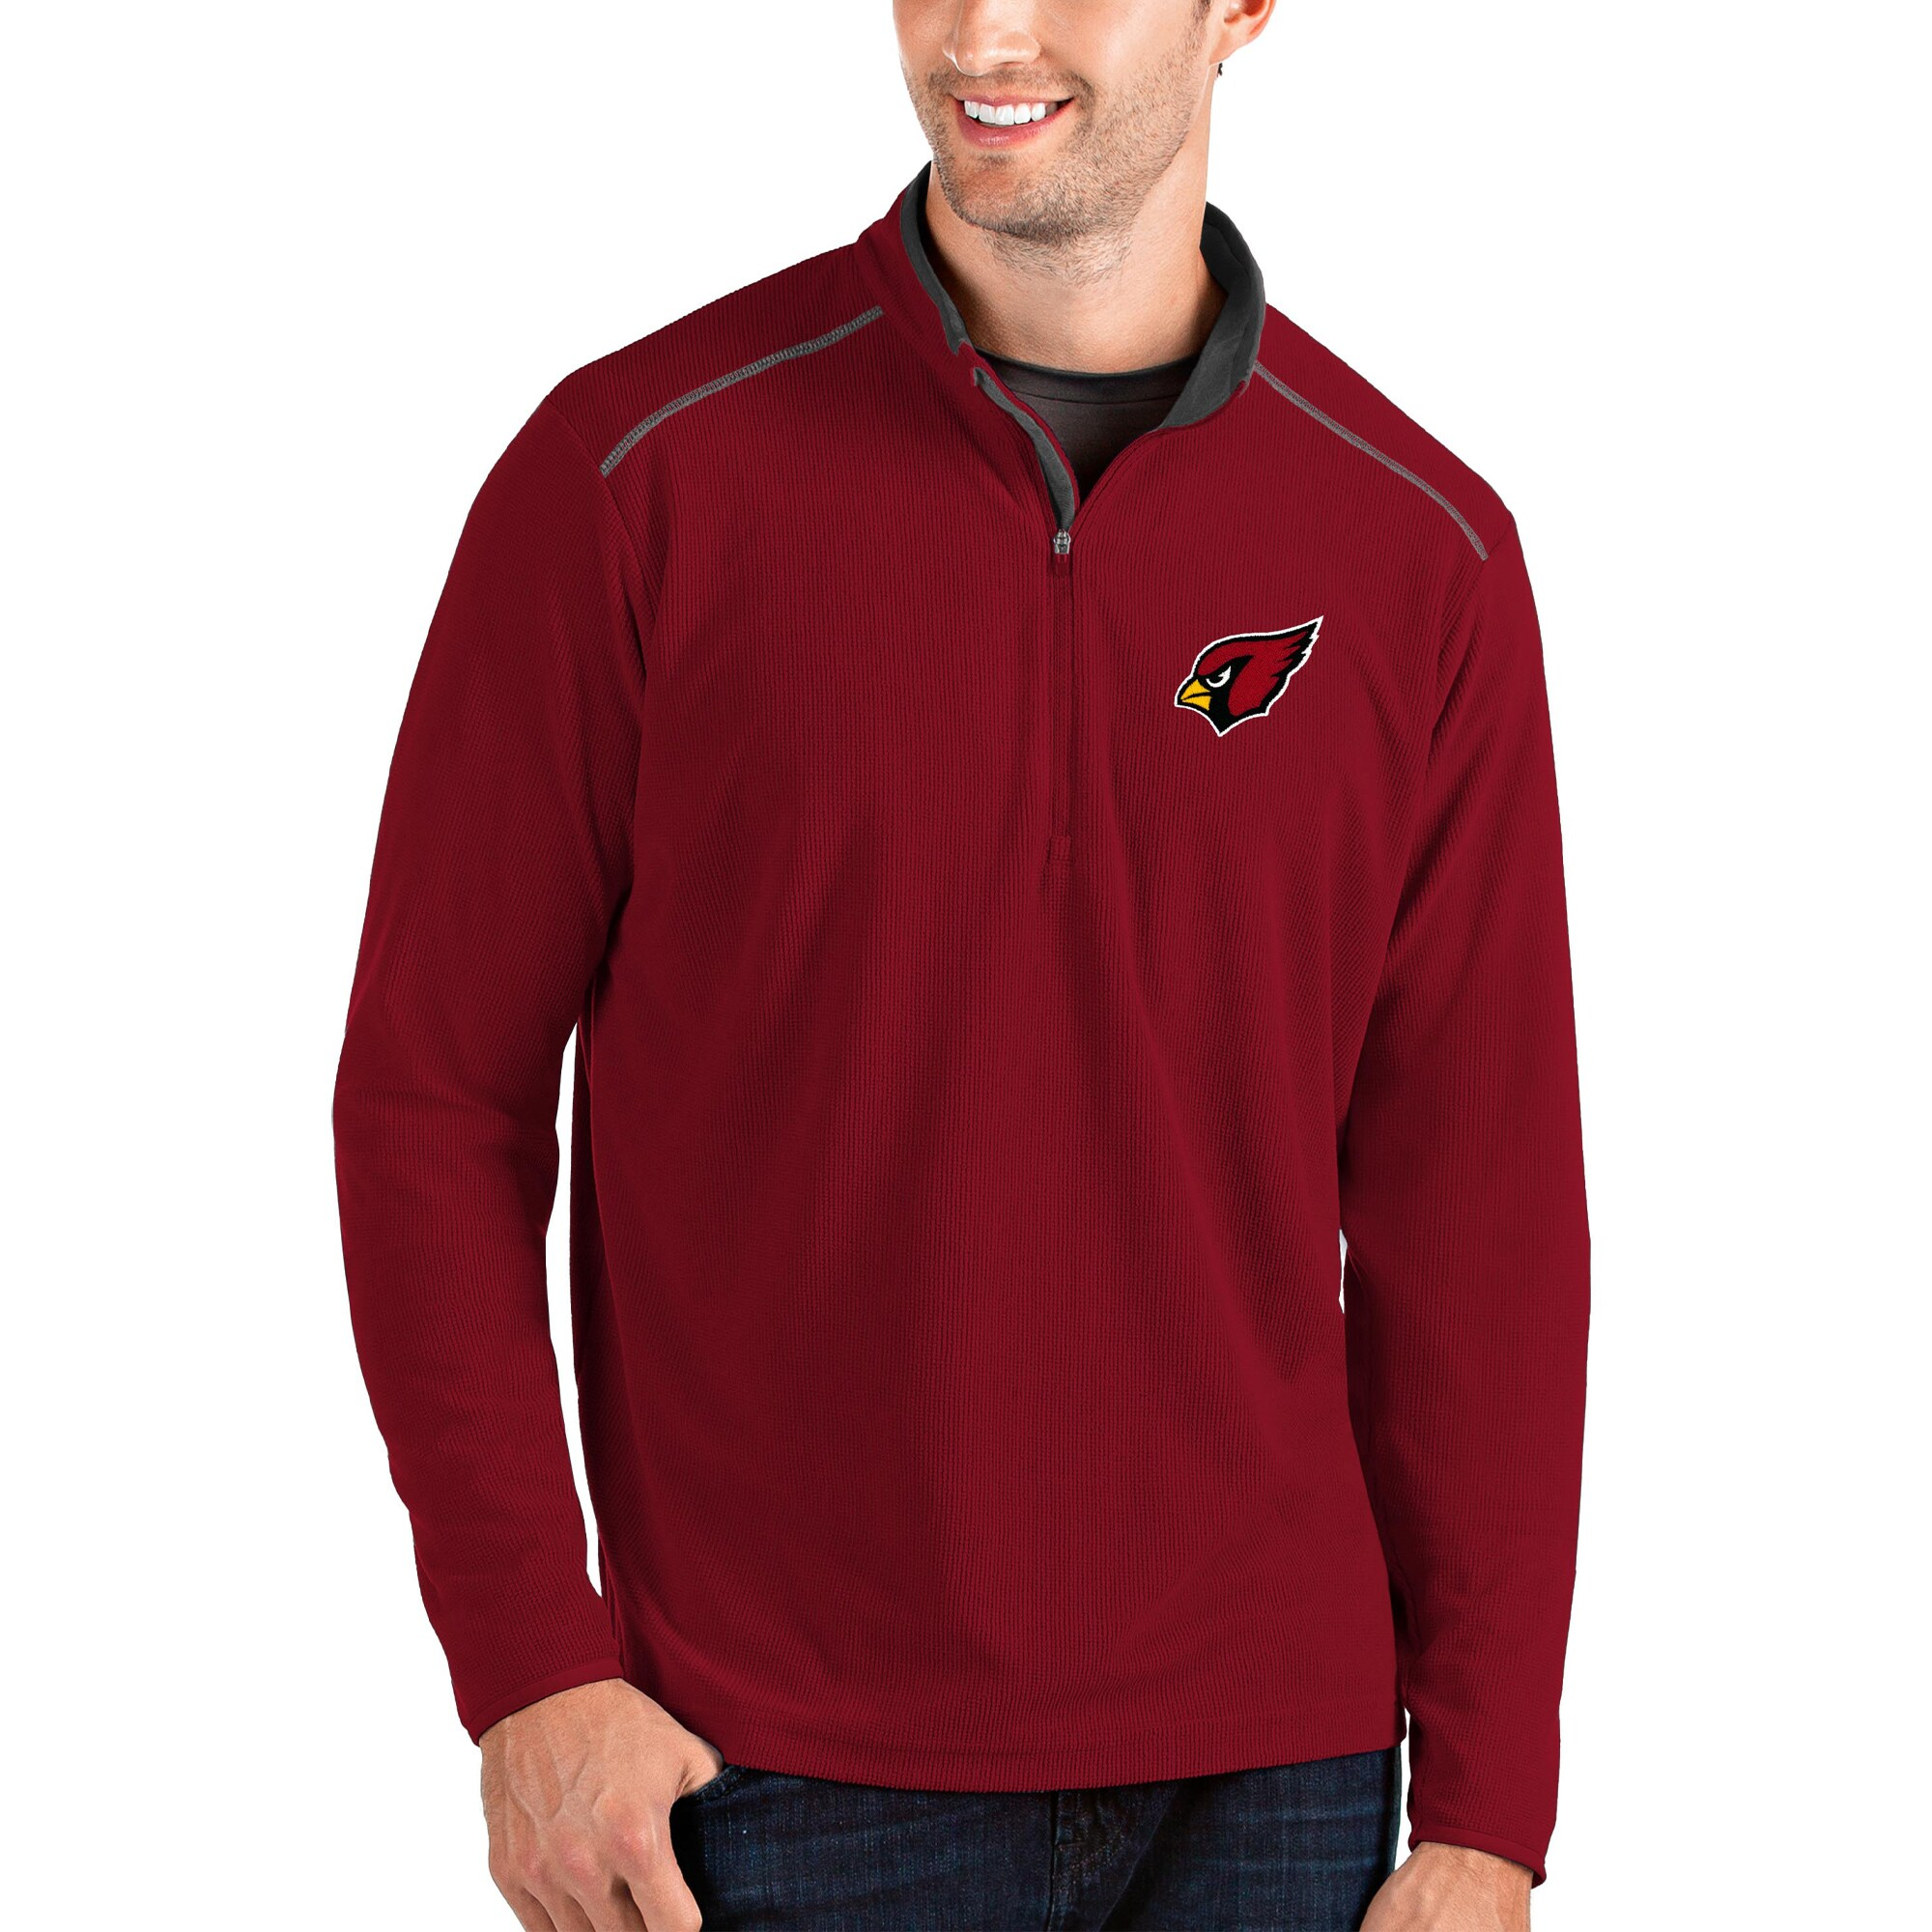 Arizona Cardinals Antigua Glacier Quarter-Zip Pullover Jacket - Cardinal/Gray